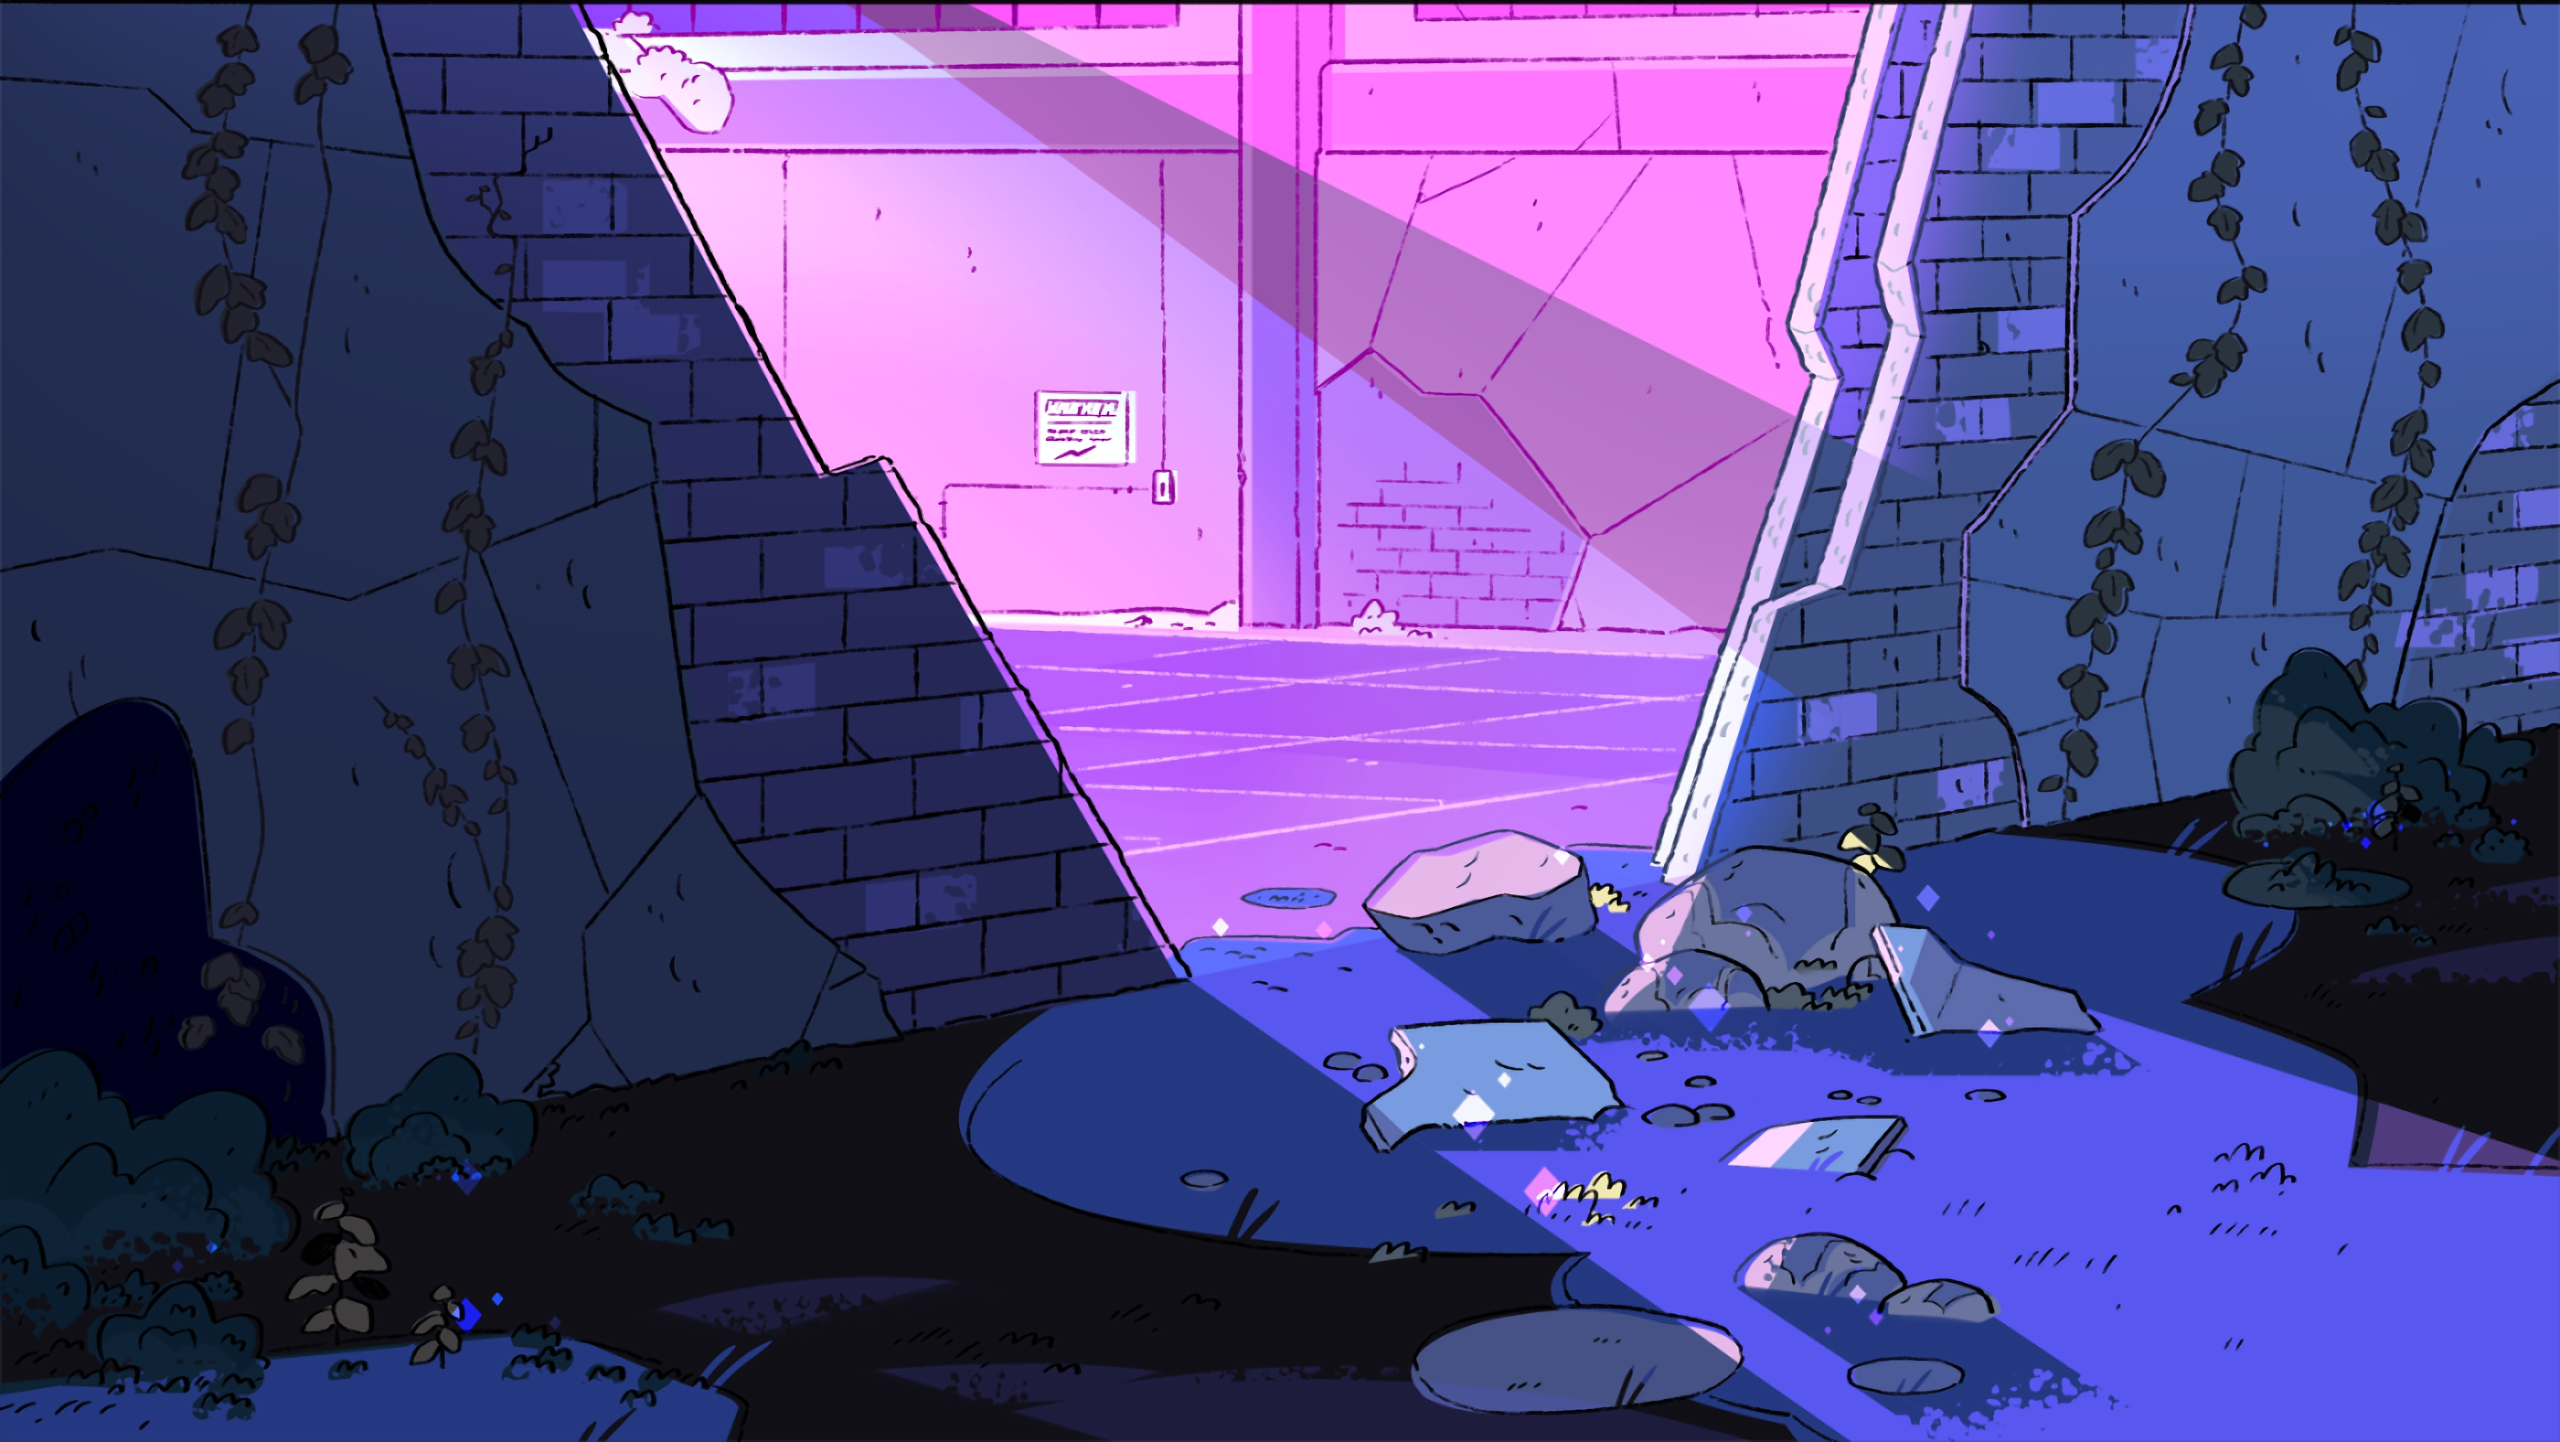 Steven Universe Backgrounds Space Posted By Sarah Simpson I decided to have a go at designing my own backgrounds in the style of different television series (to learn from and to help. steven universe backgrounds space